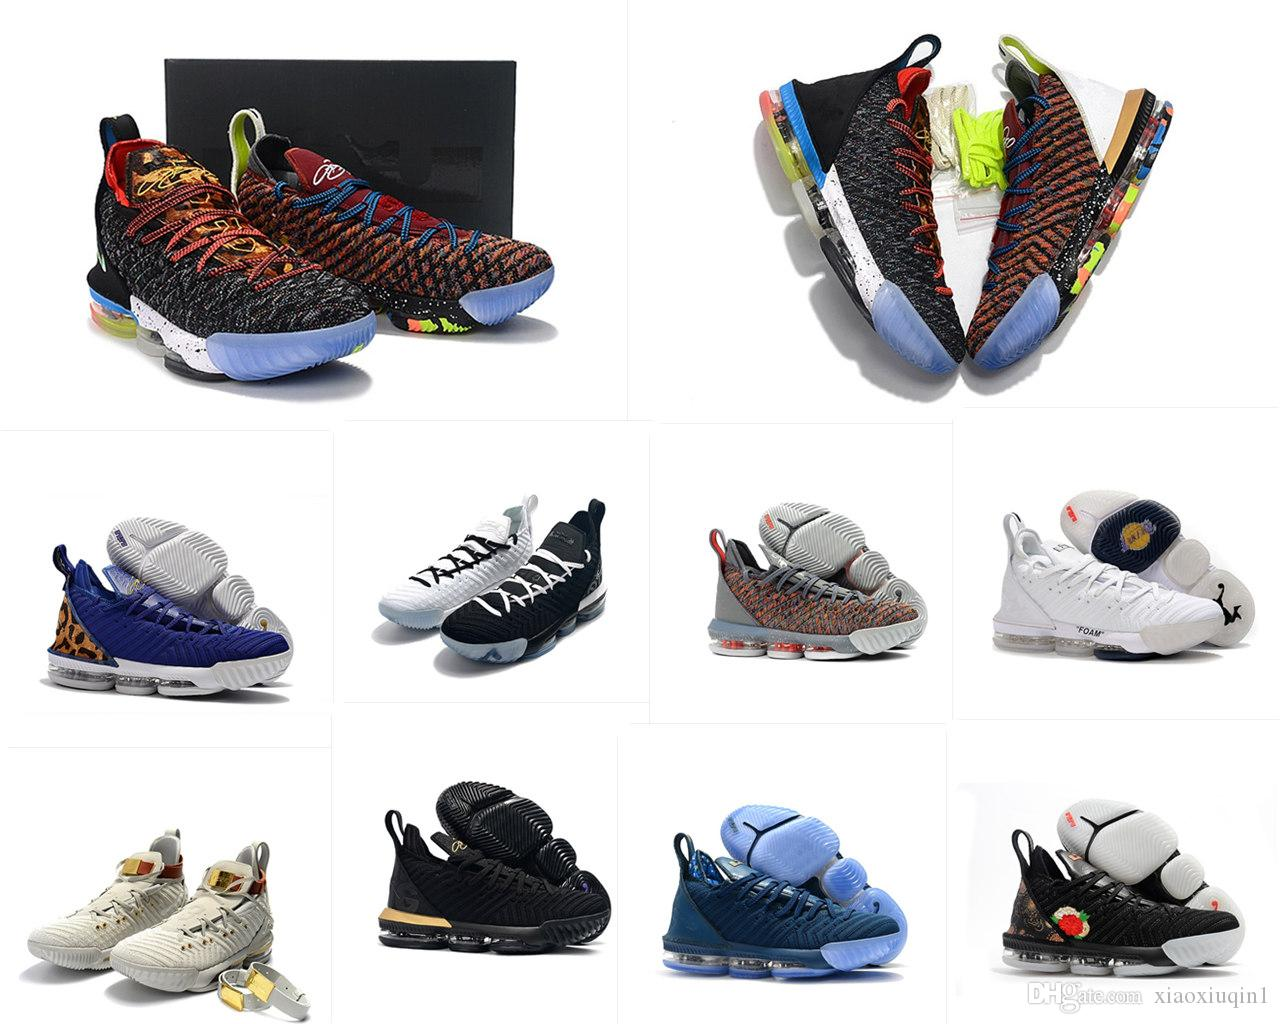 official photos d9e19 47316 what the lebron james 16 XVI mens basketball shoes for sale 16s MVP  Christmas BHM Oreo youth kids women sneakers with original box